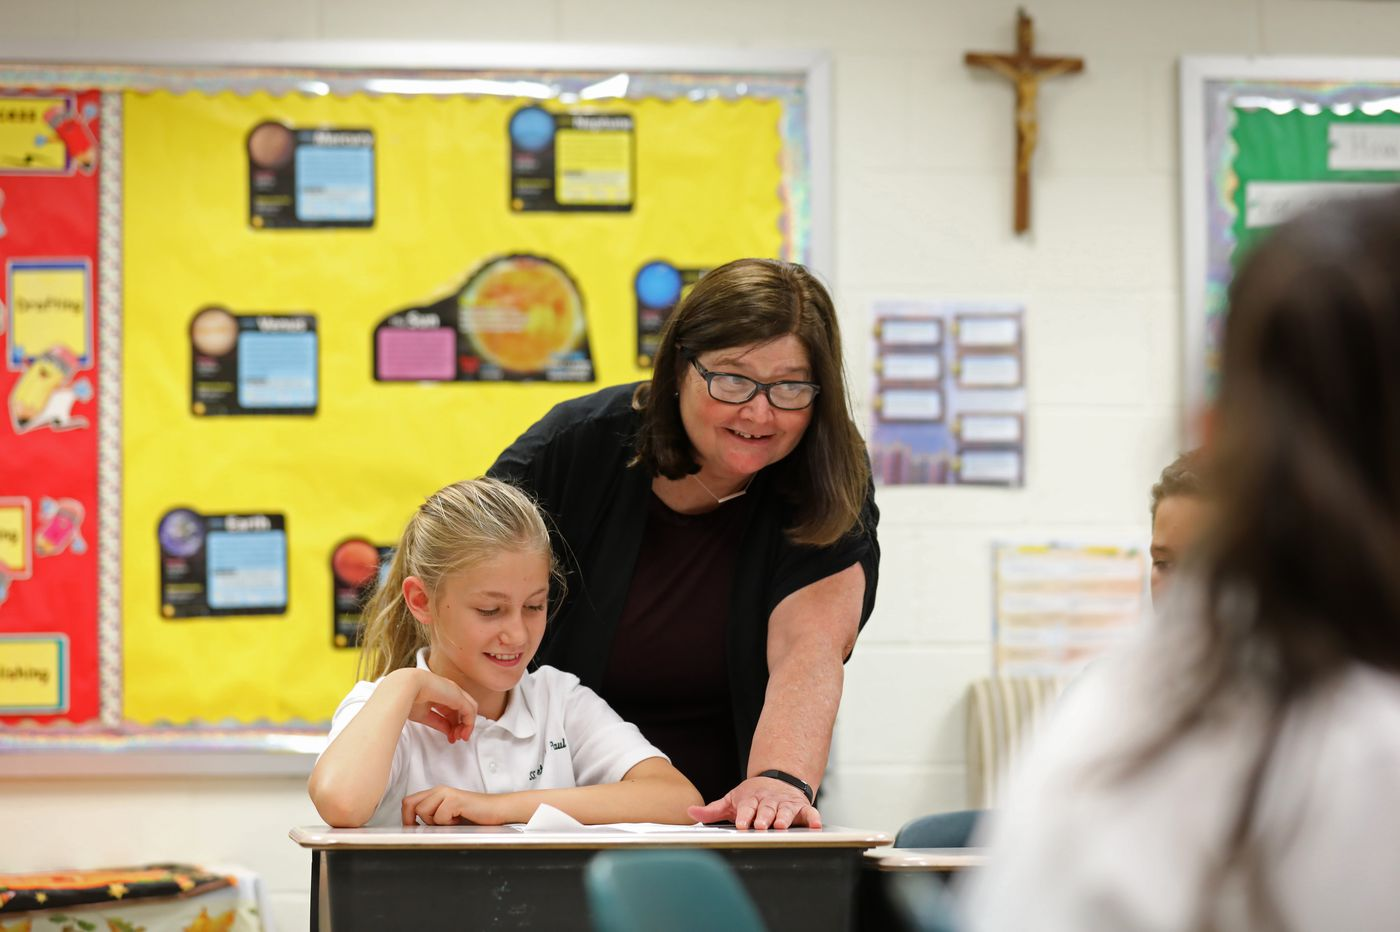 Chesco Catholic school principal named among best in U.S.